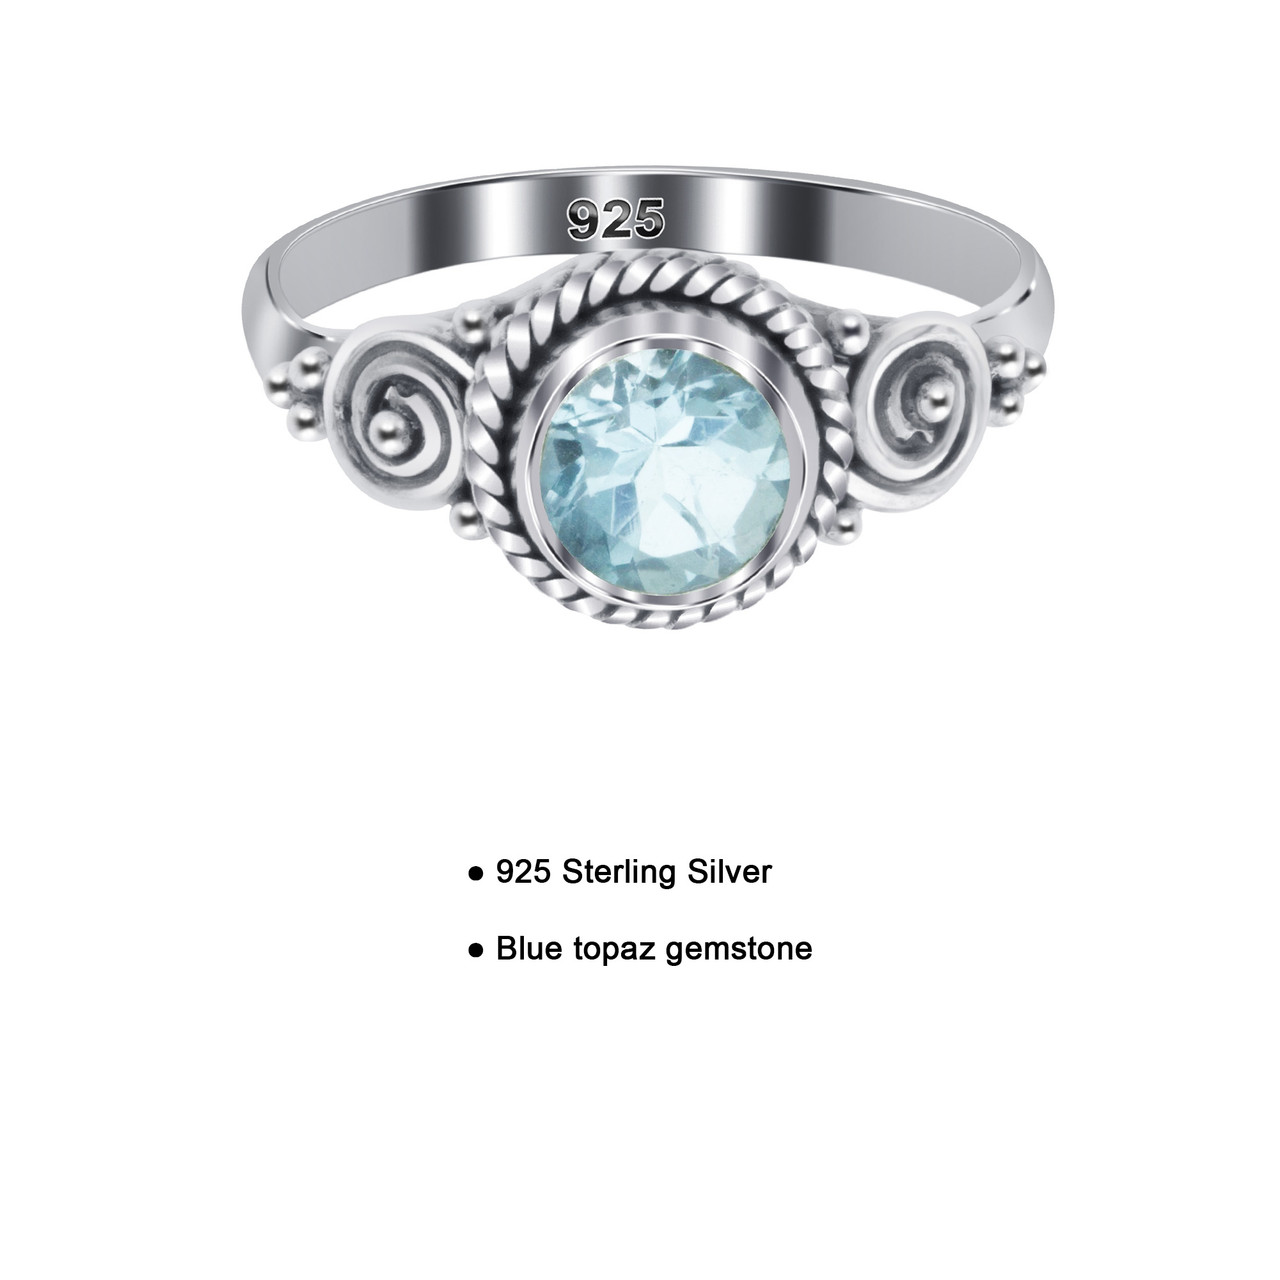 Sterling Silver 5mm Round Blue Topaz Gemstone Solitaire Ring